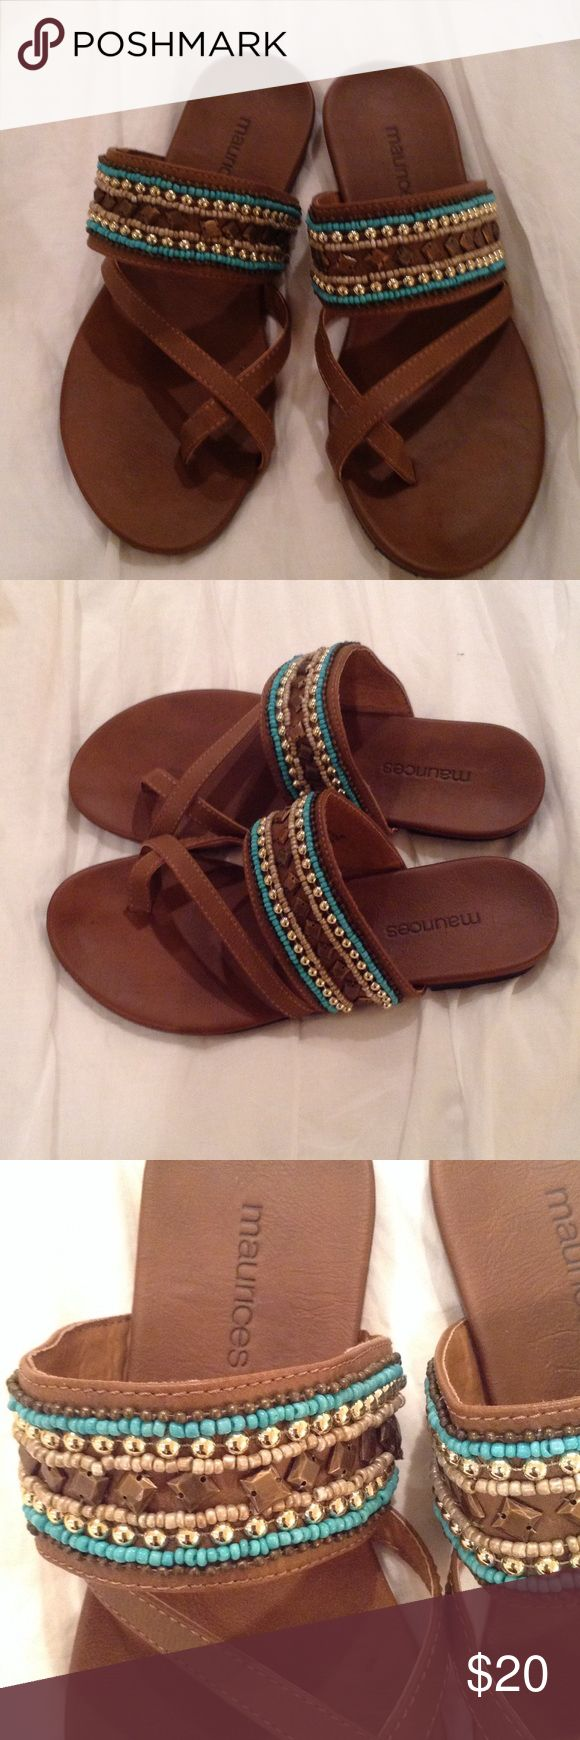 NWOT Maurice's Sandals (Size 7) New Without Tag or size sticker.  I'm pretty sure these are a size 7 as I remember trying them on at the Maurice's store & they fit perfectly.  I love them, but need to downscale my closet.  All items come from a pet/smoke free environment.  Please no Trades or PayPal.  Thank You Maurices Shoes Sandals